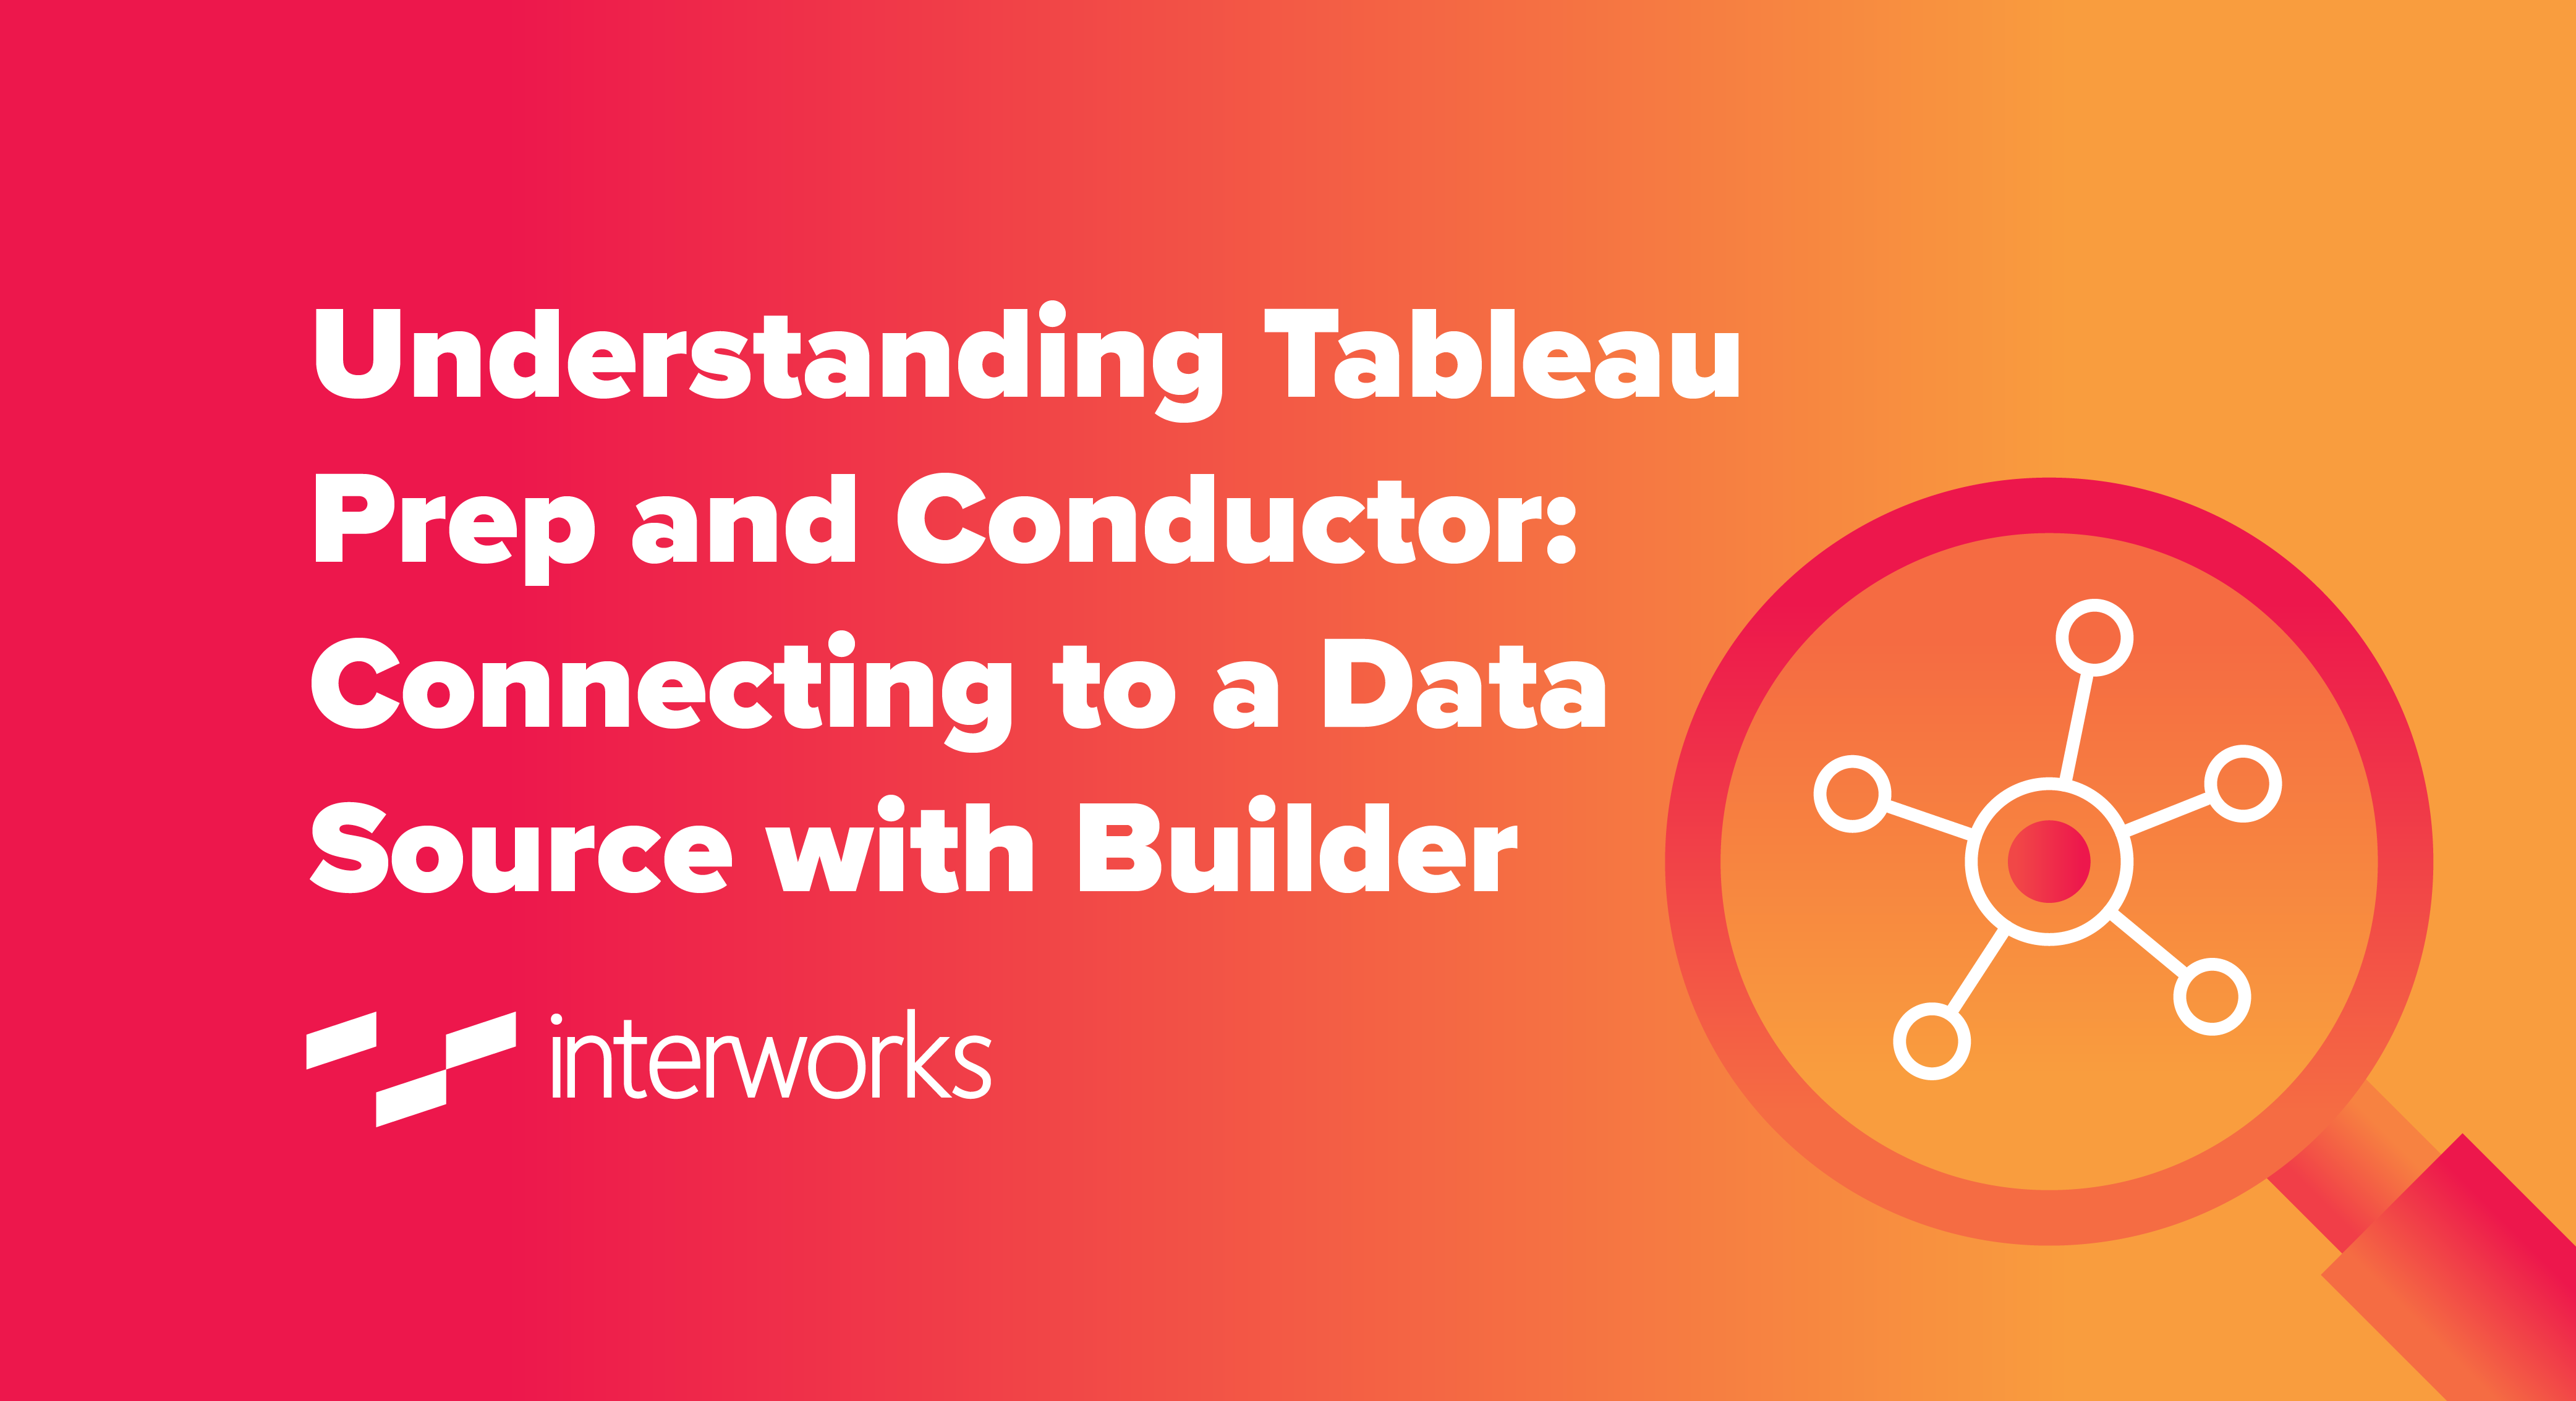 Understanding Tableau Prep and Conductor: Connecting to a Data Source